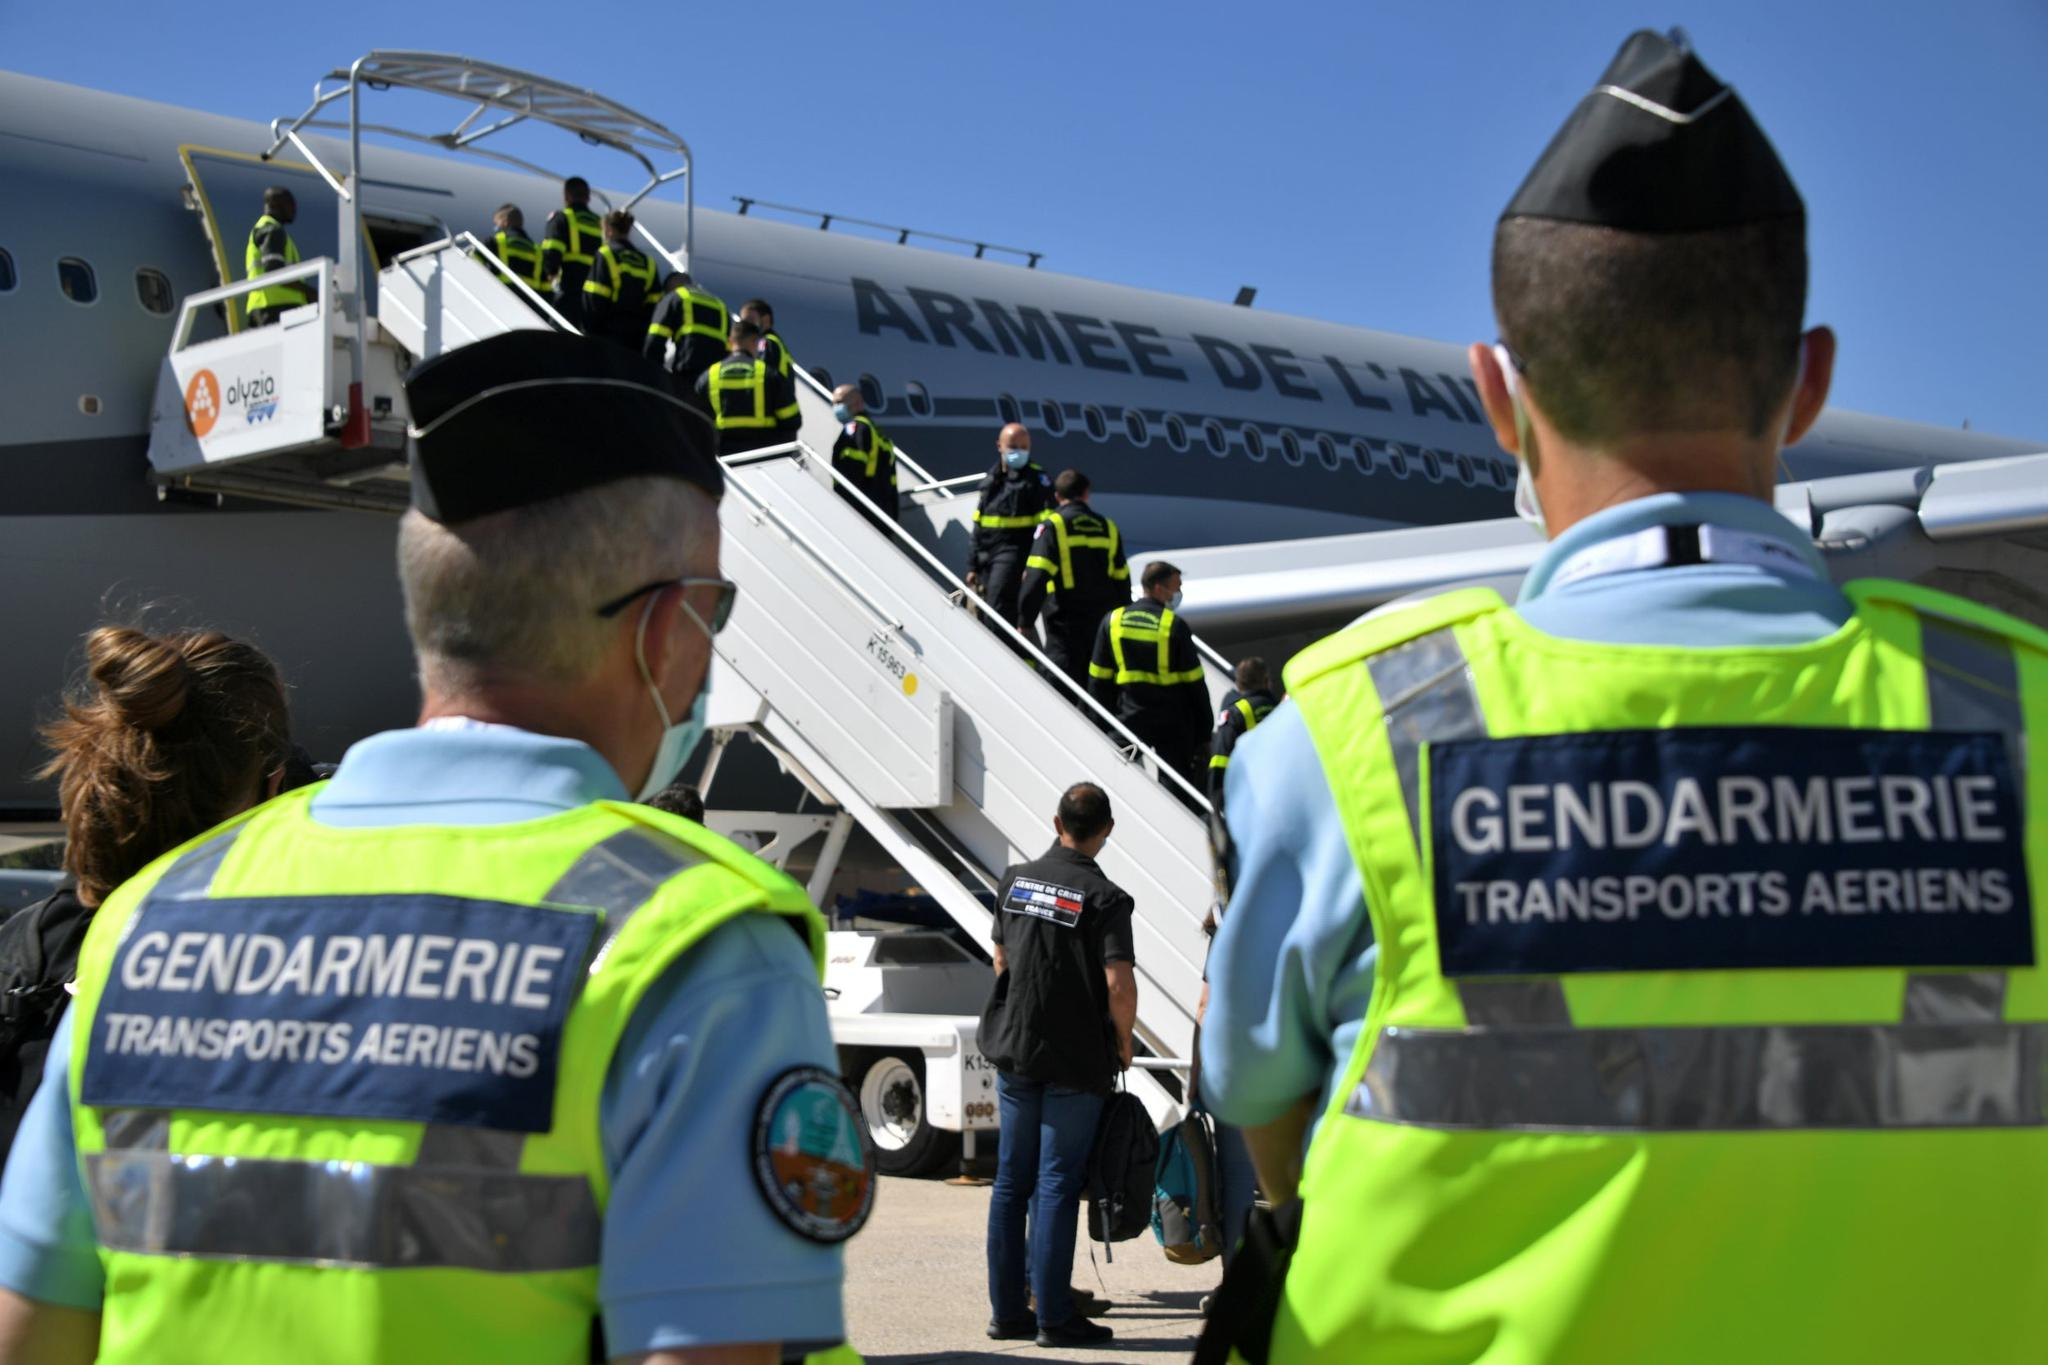 French gendarmes look at Securite Civile (Civil Security) personnel boarding an Airbus A330 as France sends search and rescue experts (REUTERS)